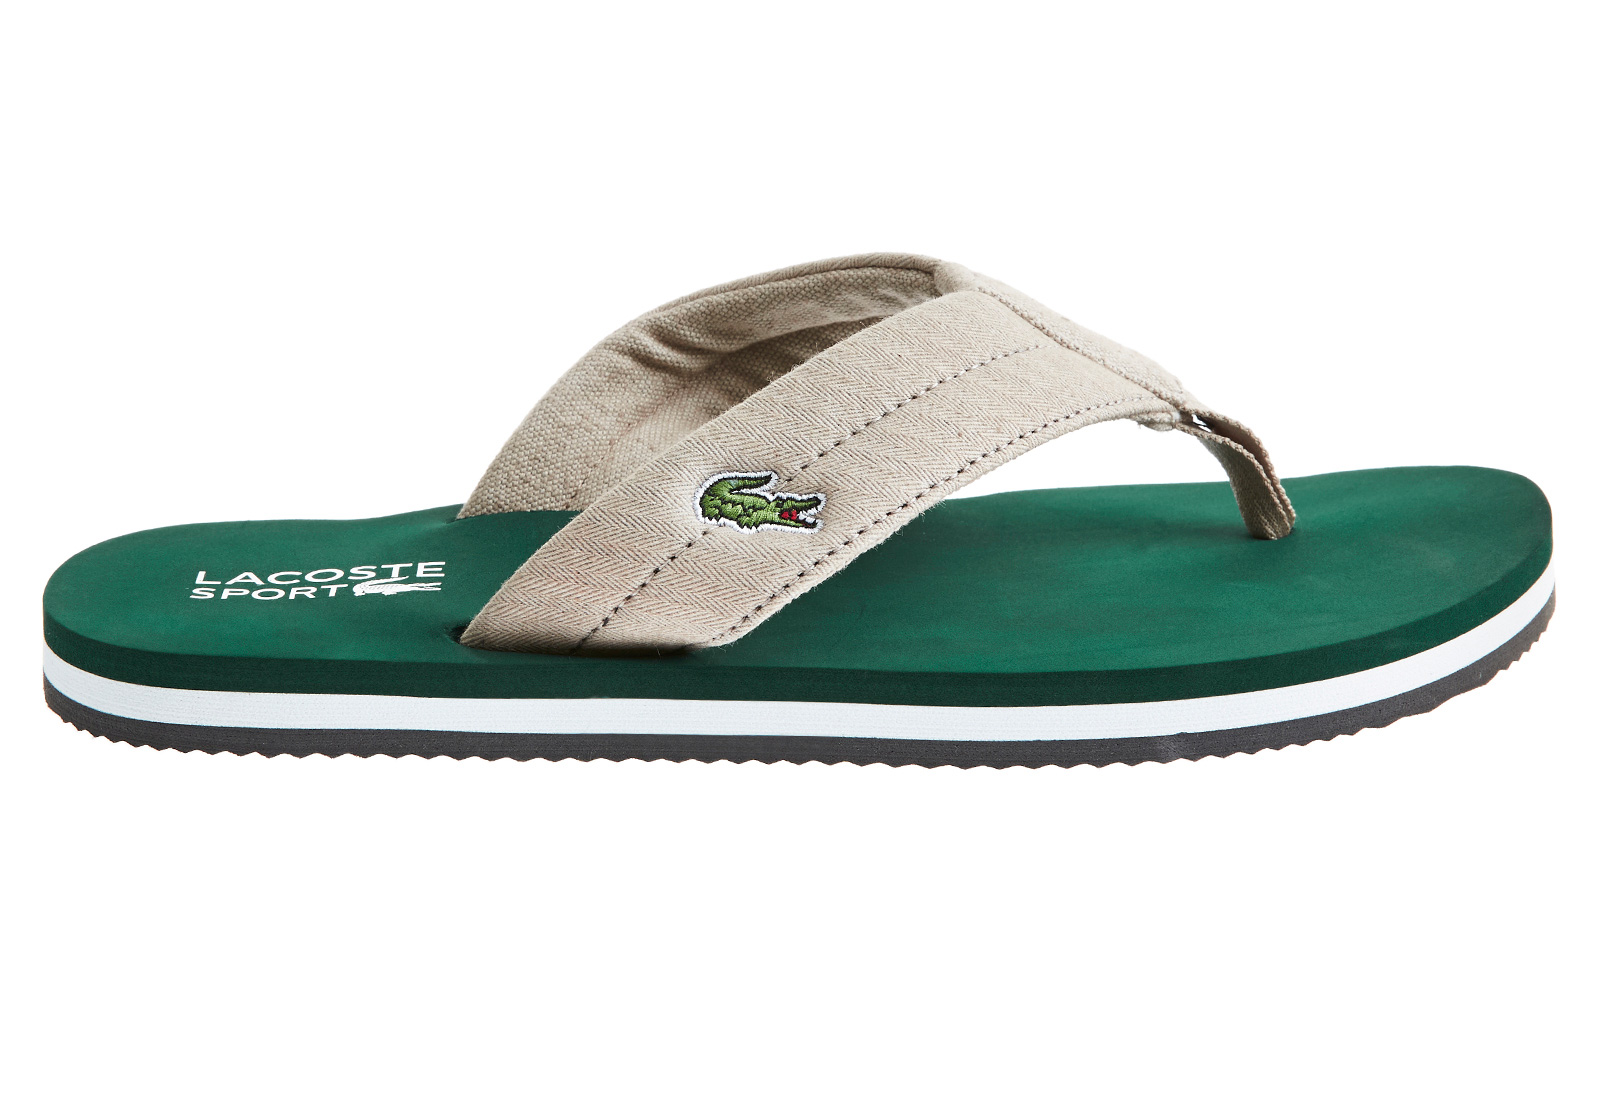 f2cbddb0d Lacoste Slippers - Randle Tbr - zx-spm00411r8 - Online shop for ...